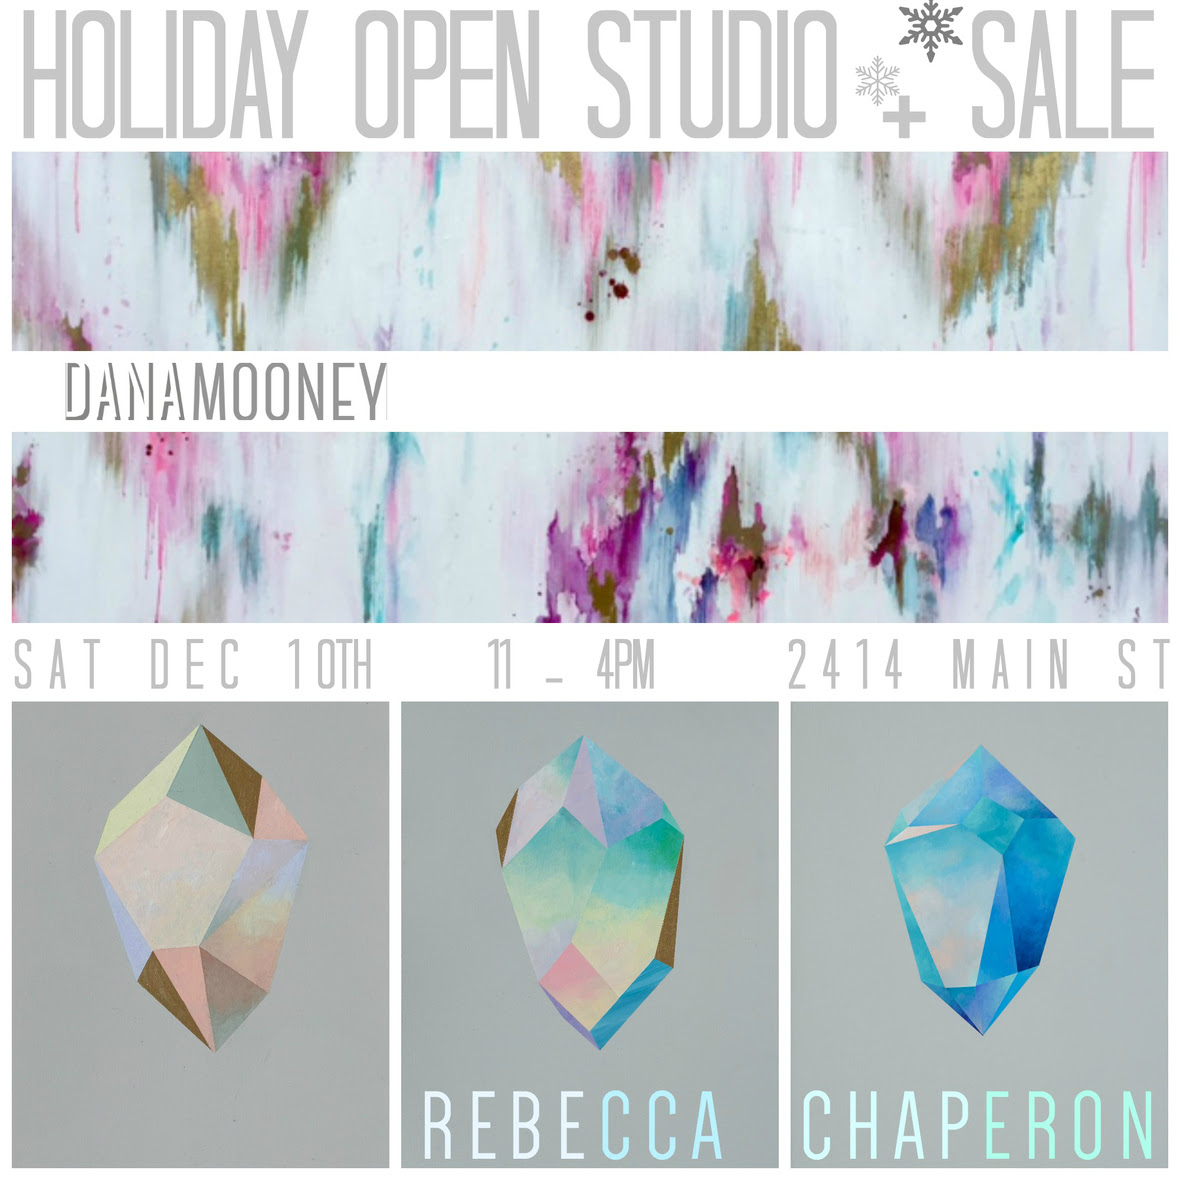 Holiday Open Studio Sale